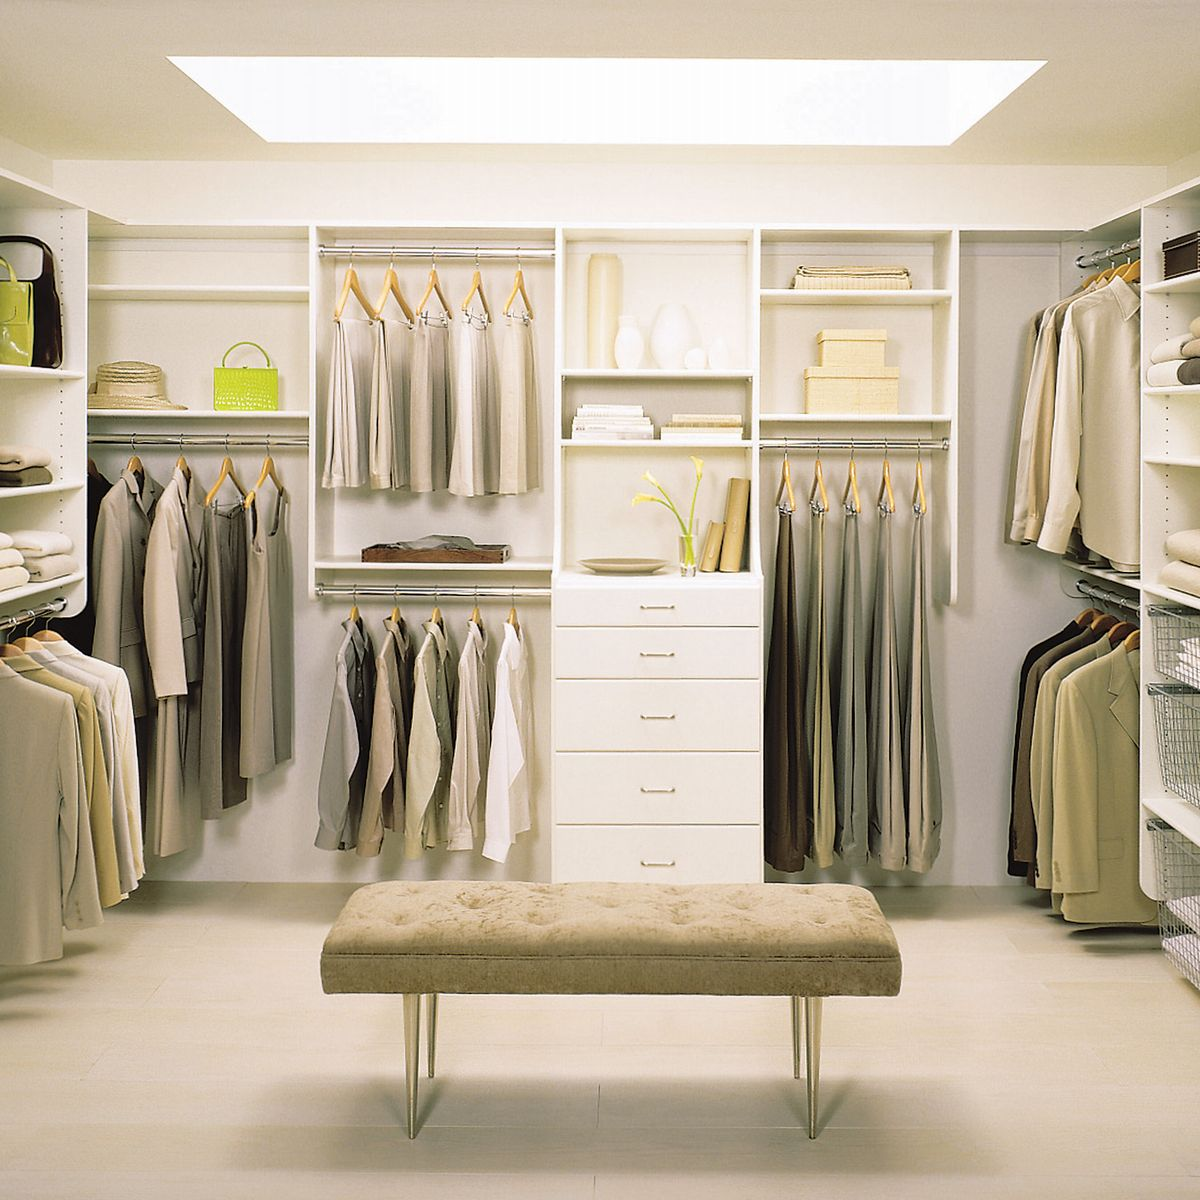 large-walk-in-closet-design-photo-14